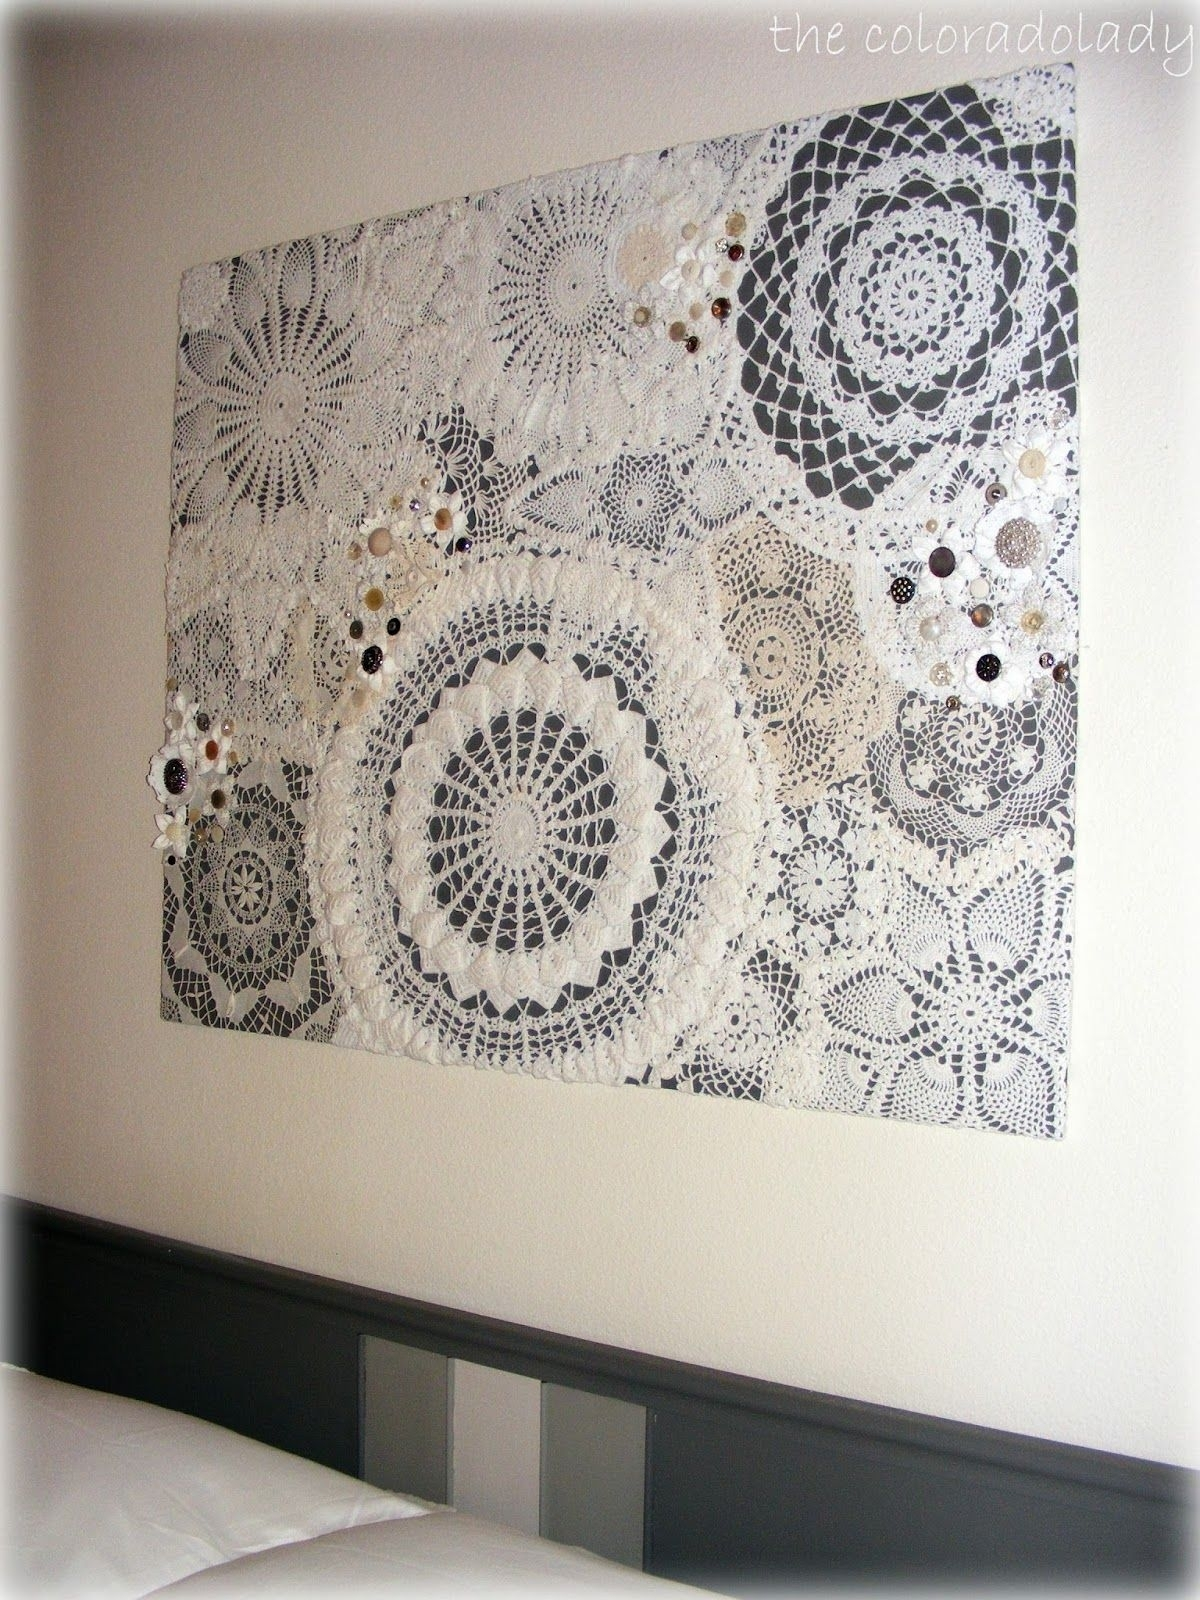 Diy Doily Craft Ideas | Walls, Doilies Crafts And Vintage Inside Most Up To Date Fabric Wall Art Patterns (View 8 of 15)